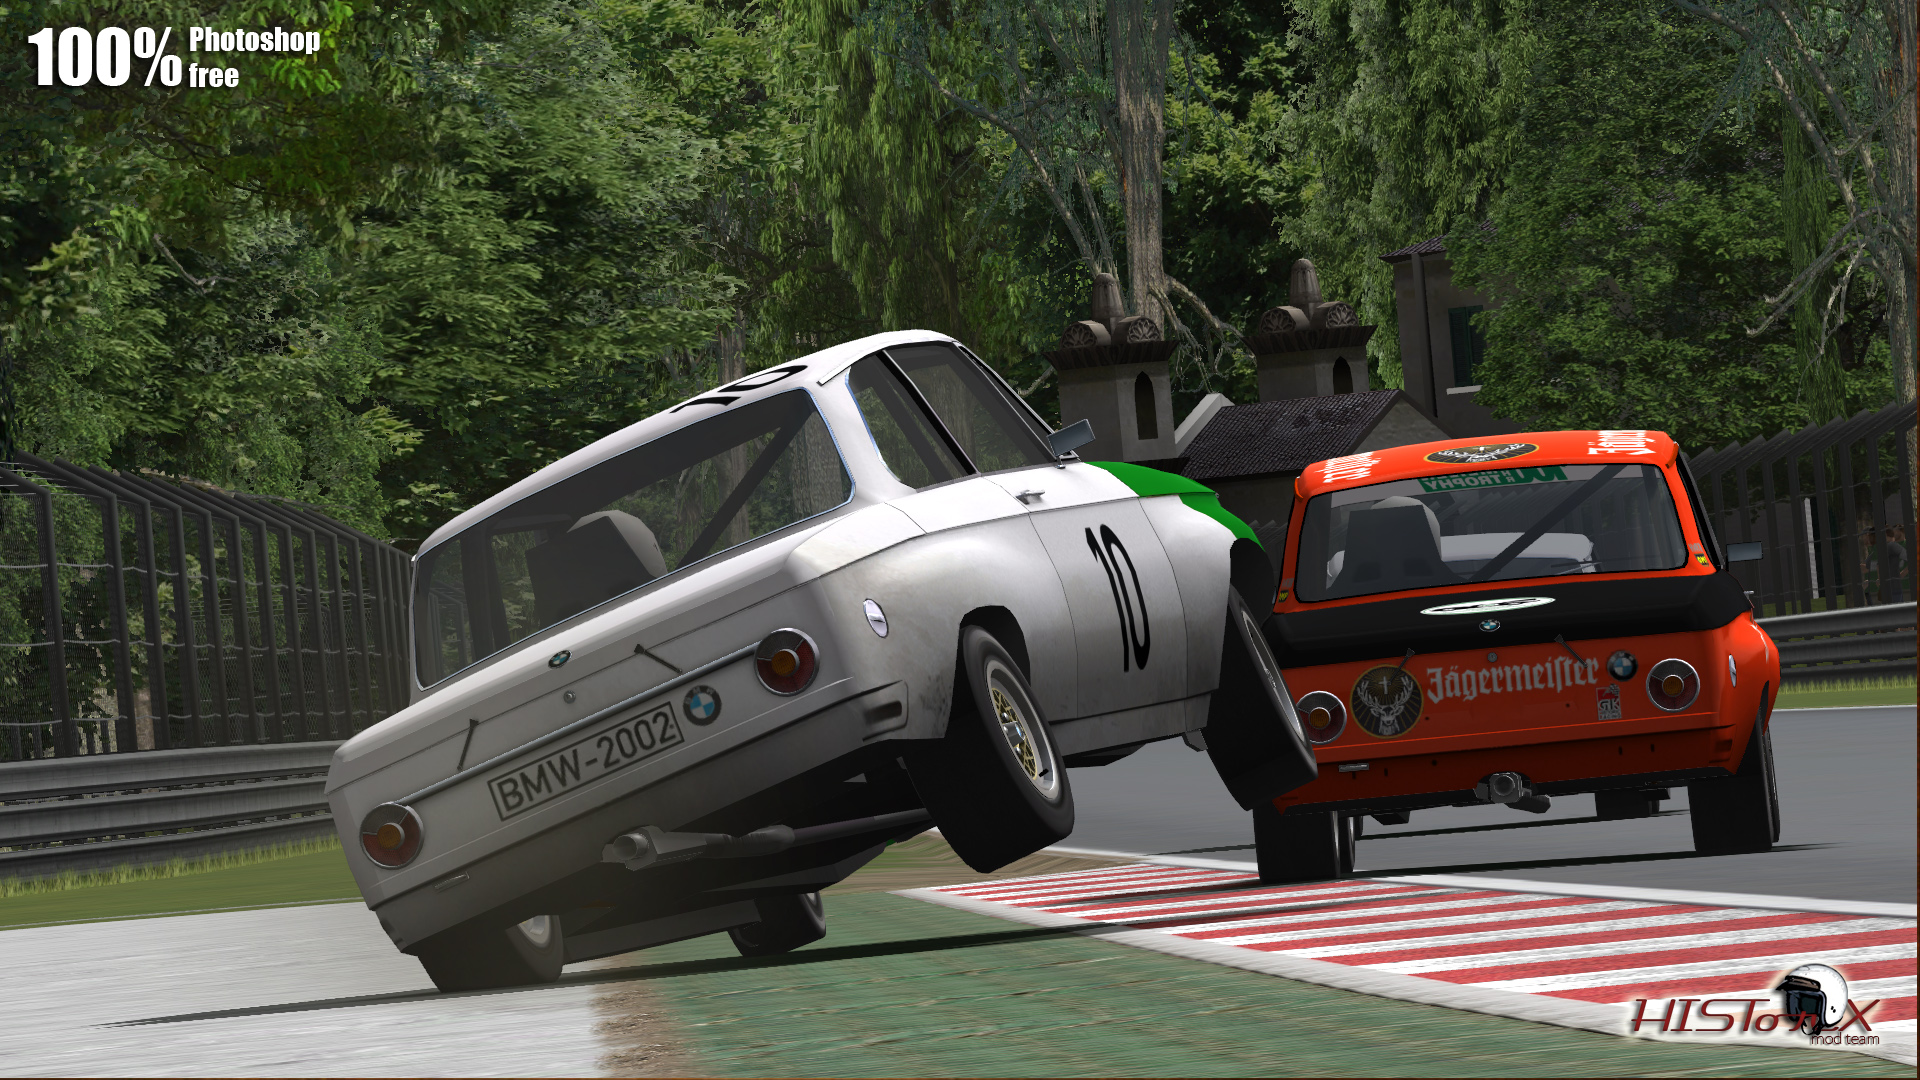 Do you want to see our WIP cars? - Page 16 - HistorX mod team